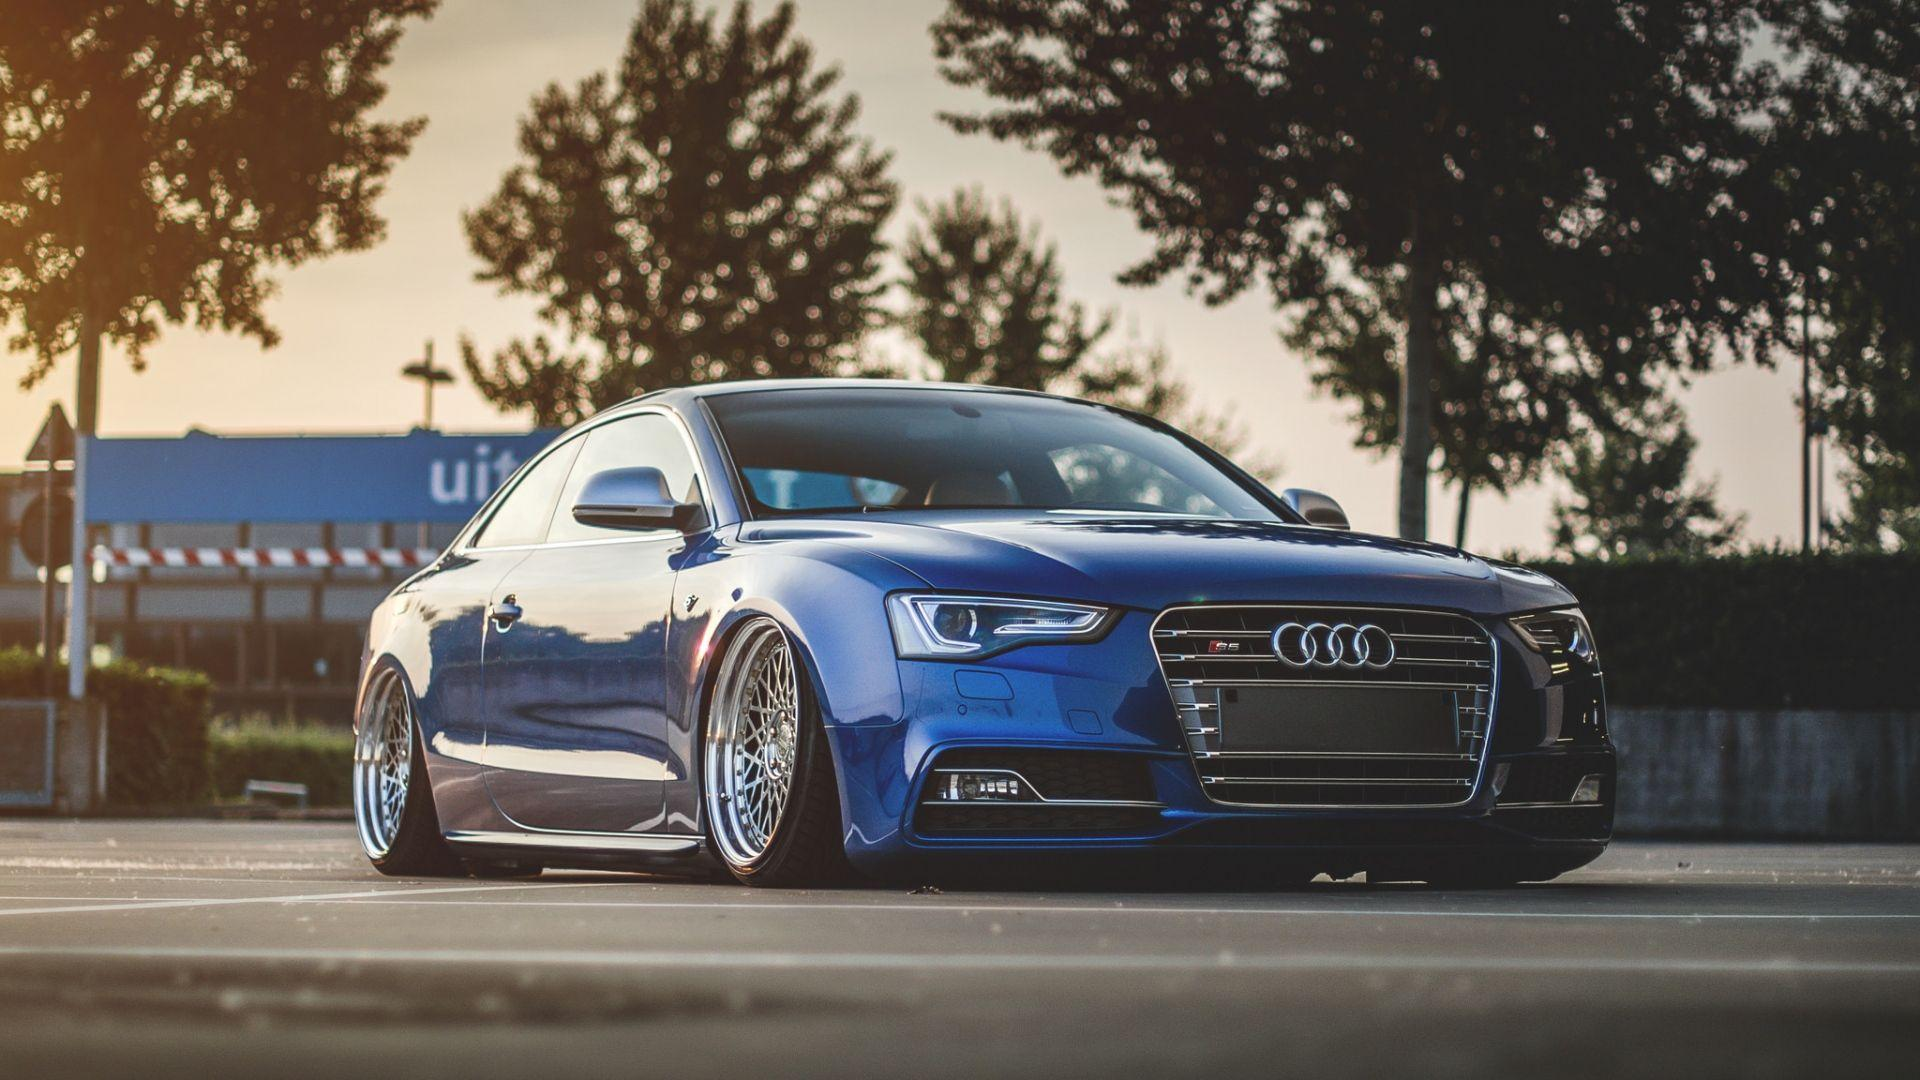 Audi wallpapers, car wallpapers and backgrounds | bestapppromotion ...